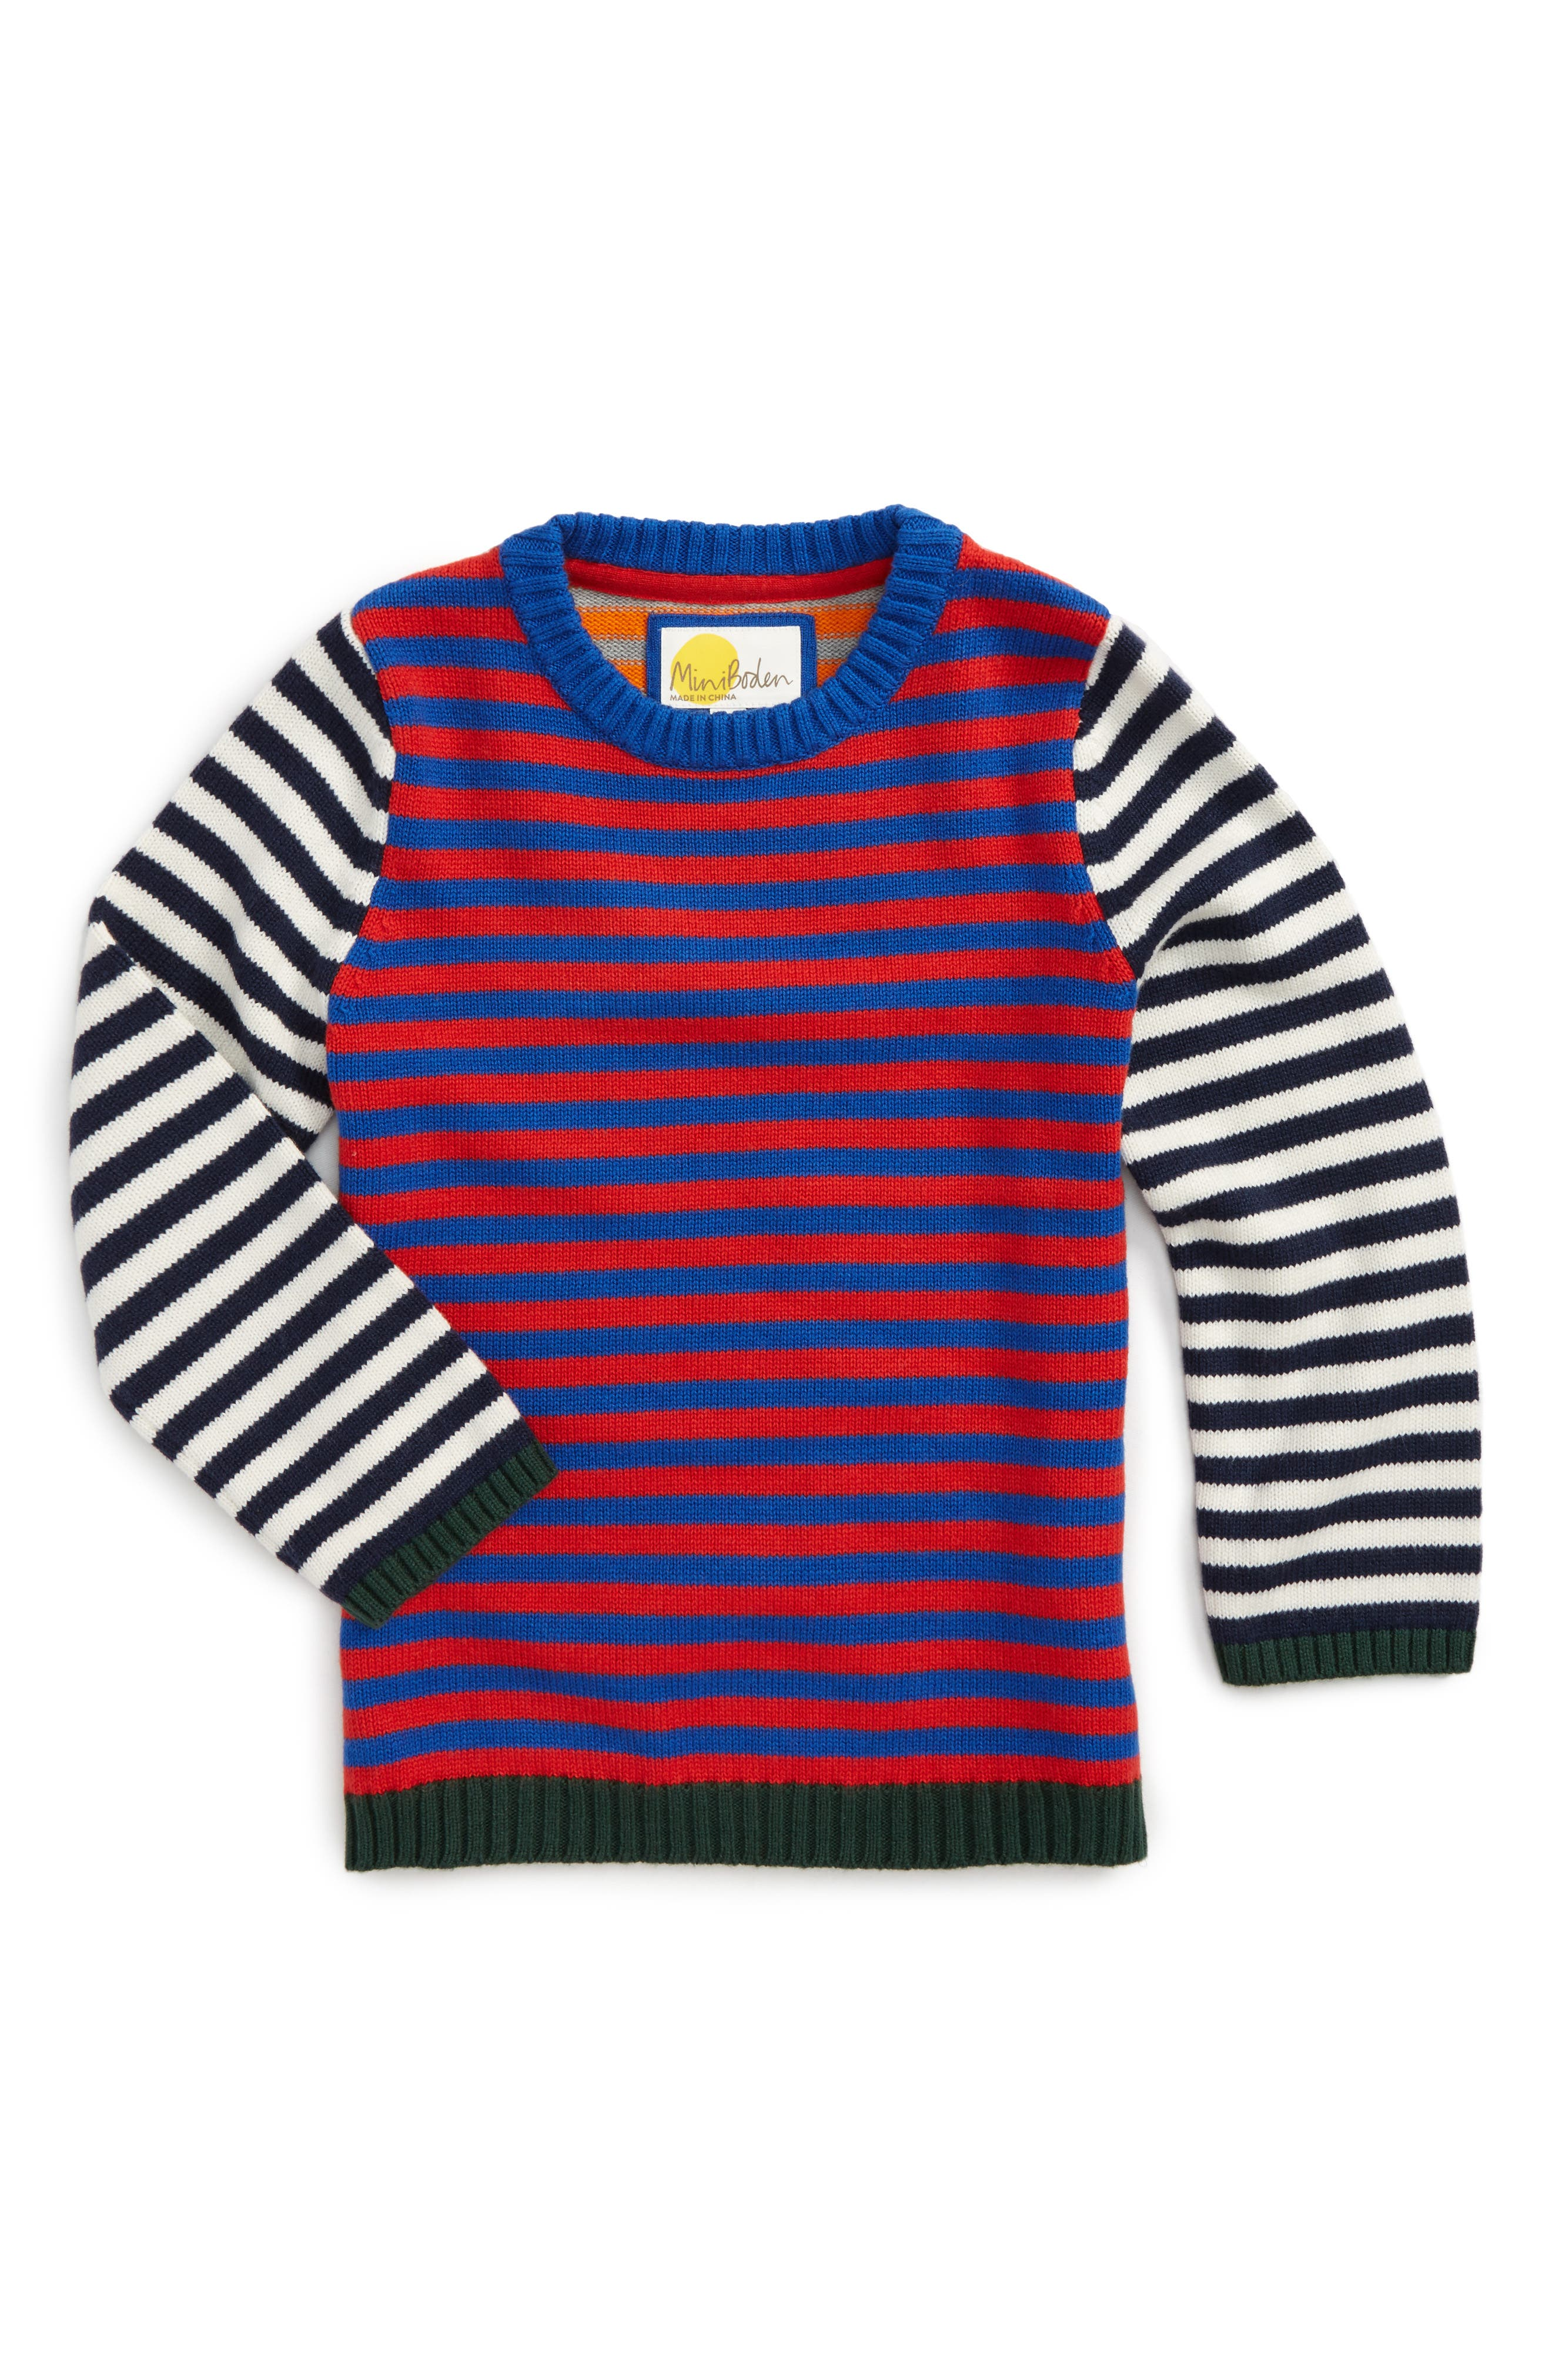 MINI BODEN Hotchpotch Sweater